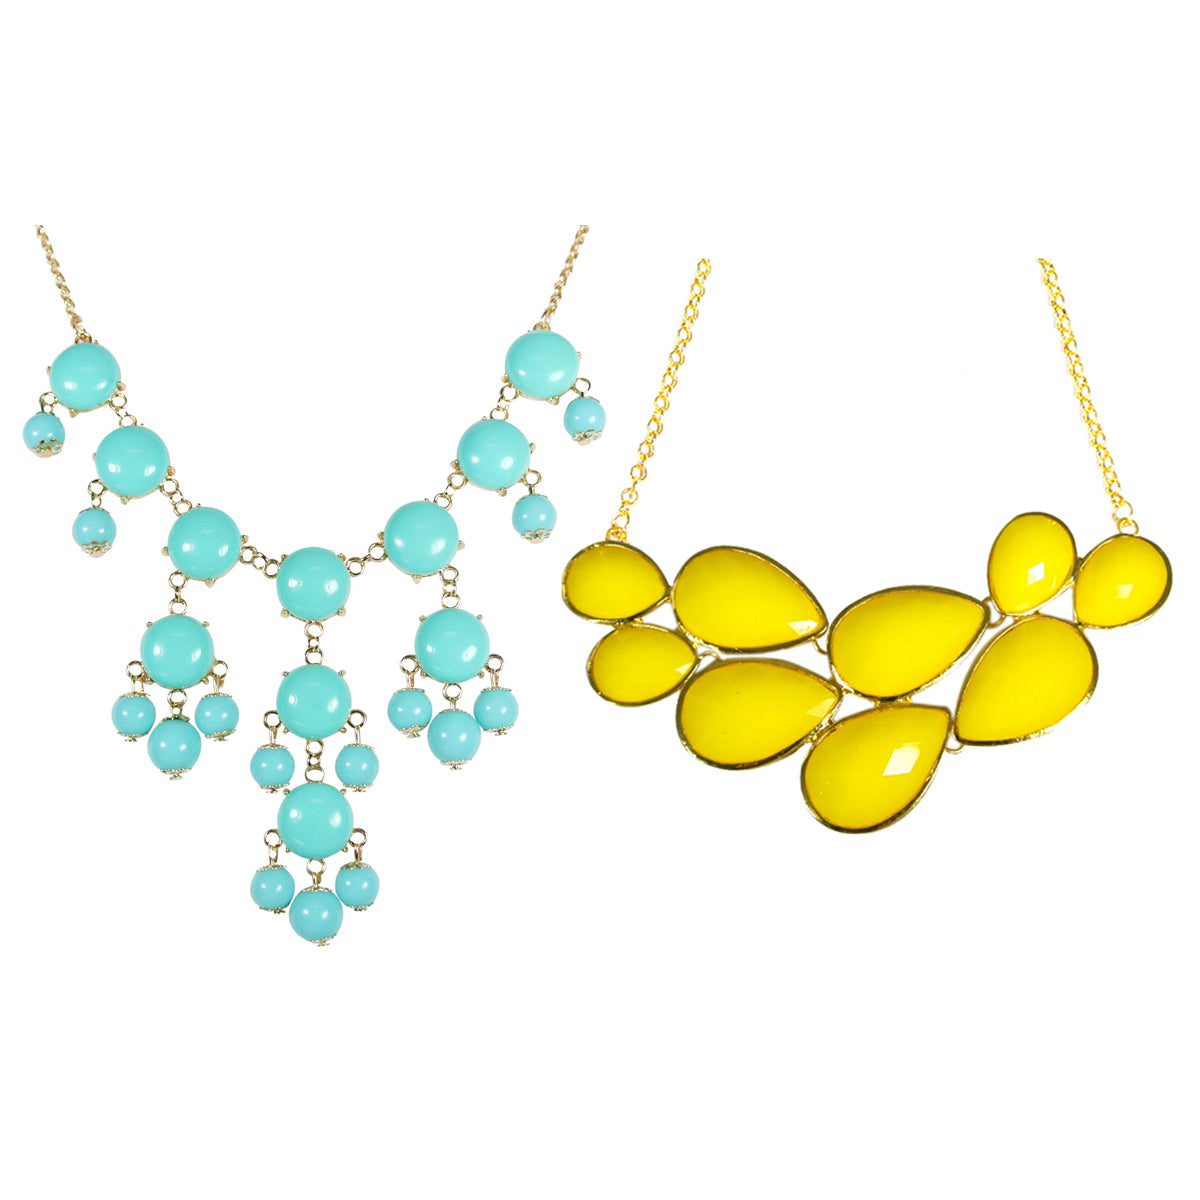 Yellow Drop Shape Bubble Statement Necklaces + Mini Bubble Bib Statement Necklace